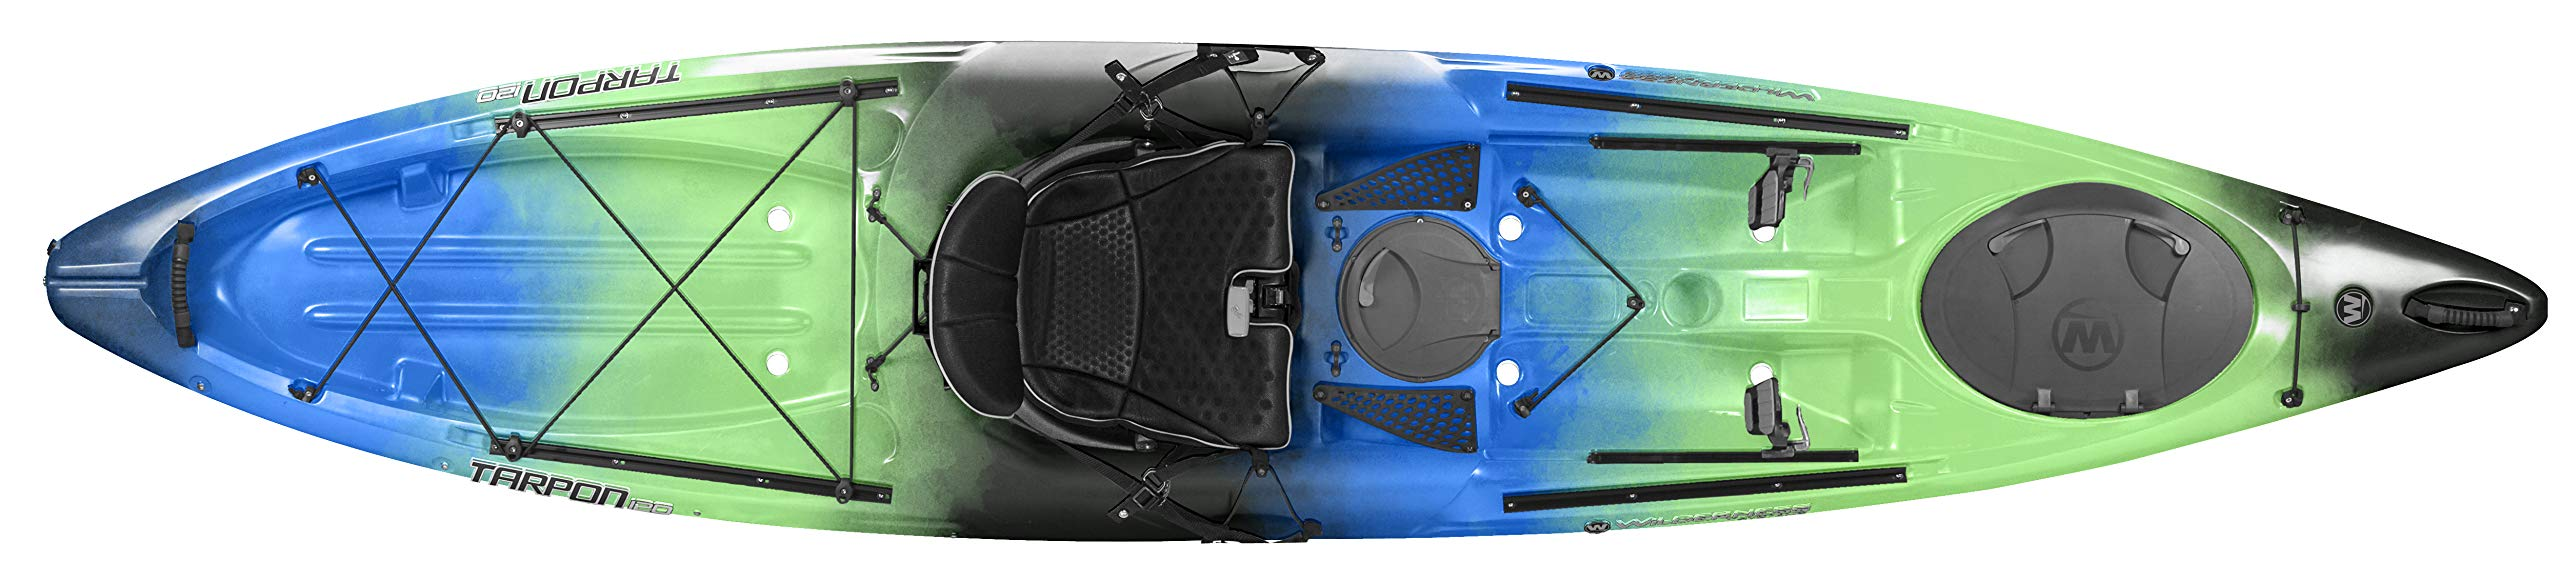 Wilderness Systems 9750215142 Tarpon 120 Kayaks, Galaxy, 12' by Wilderness Systems